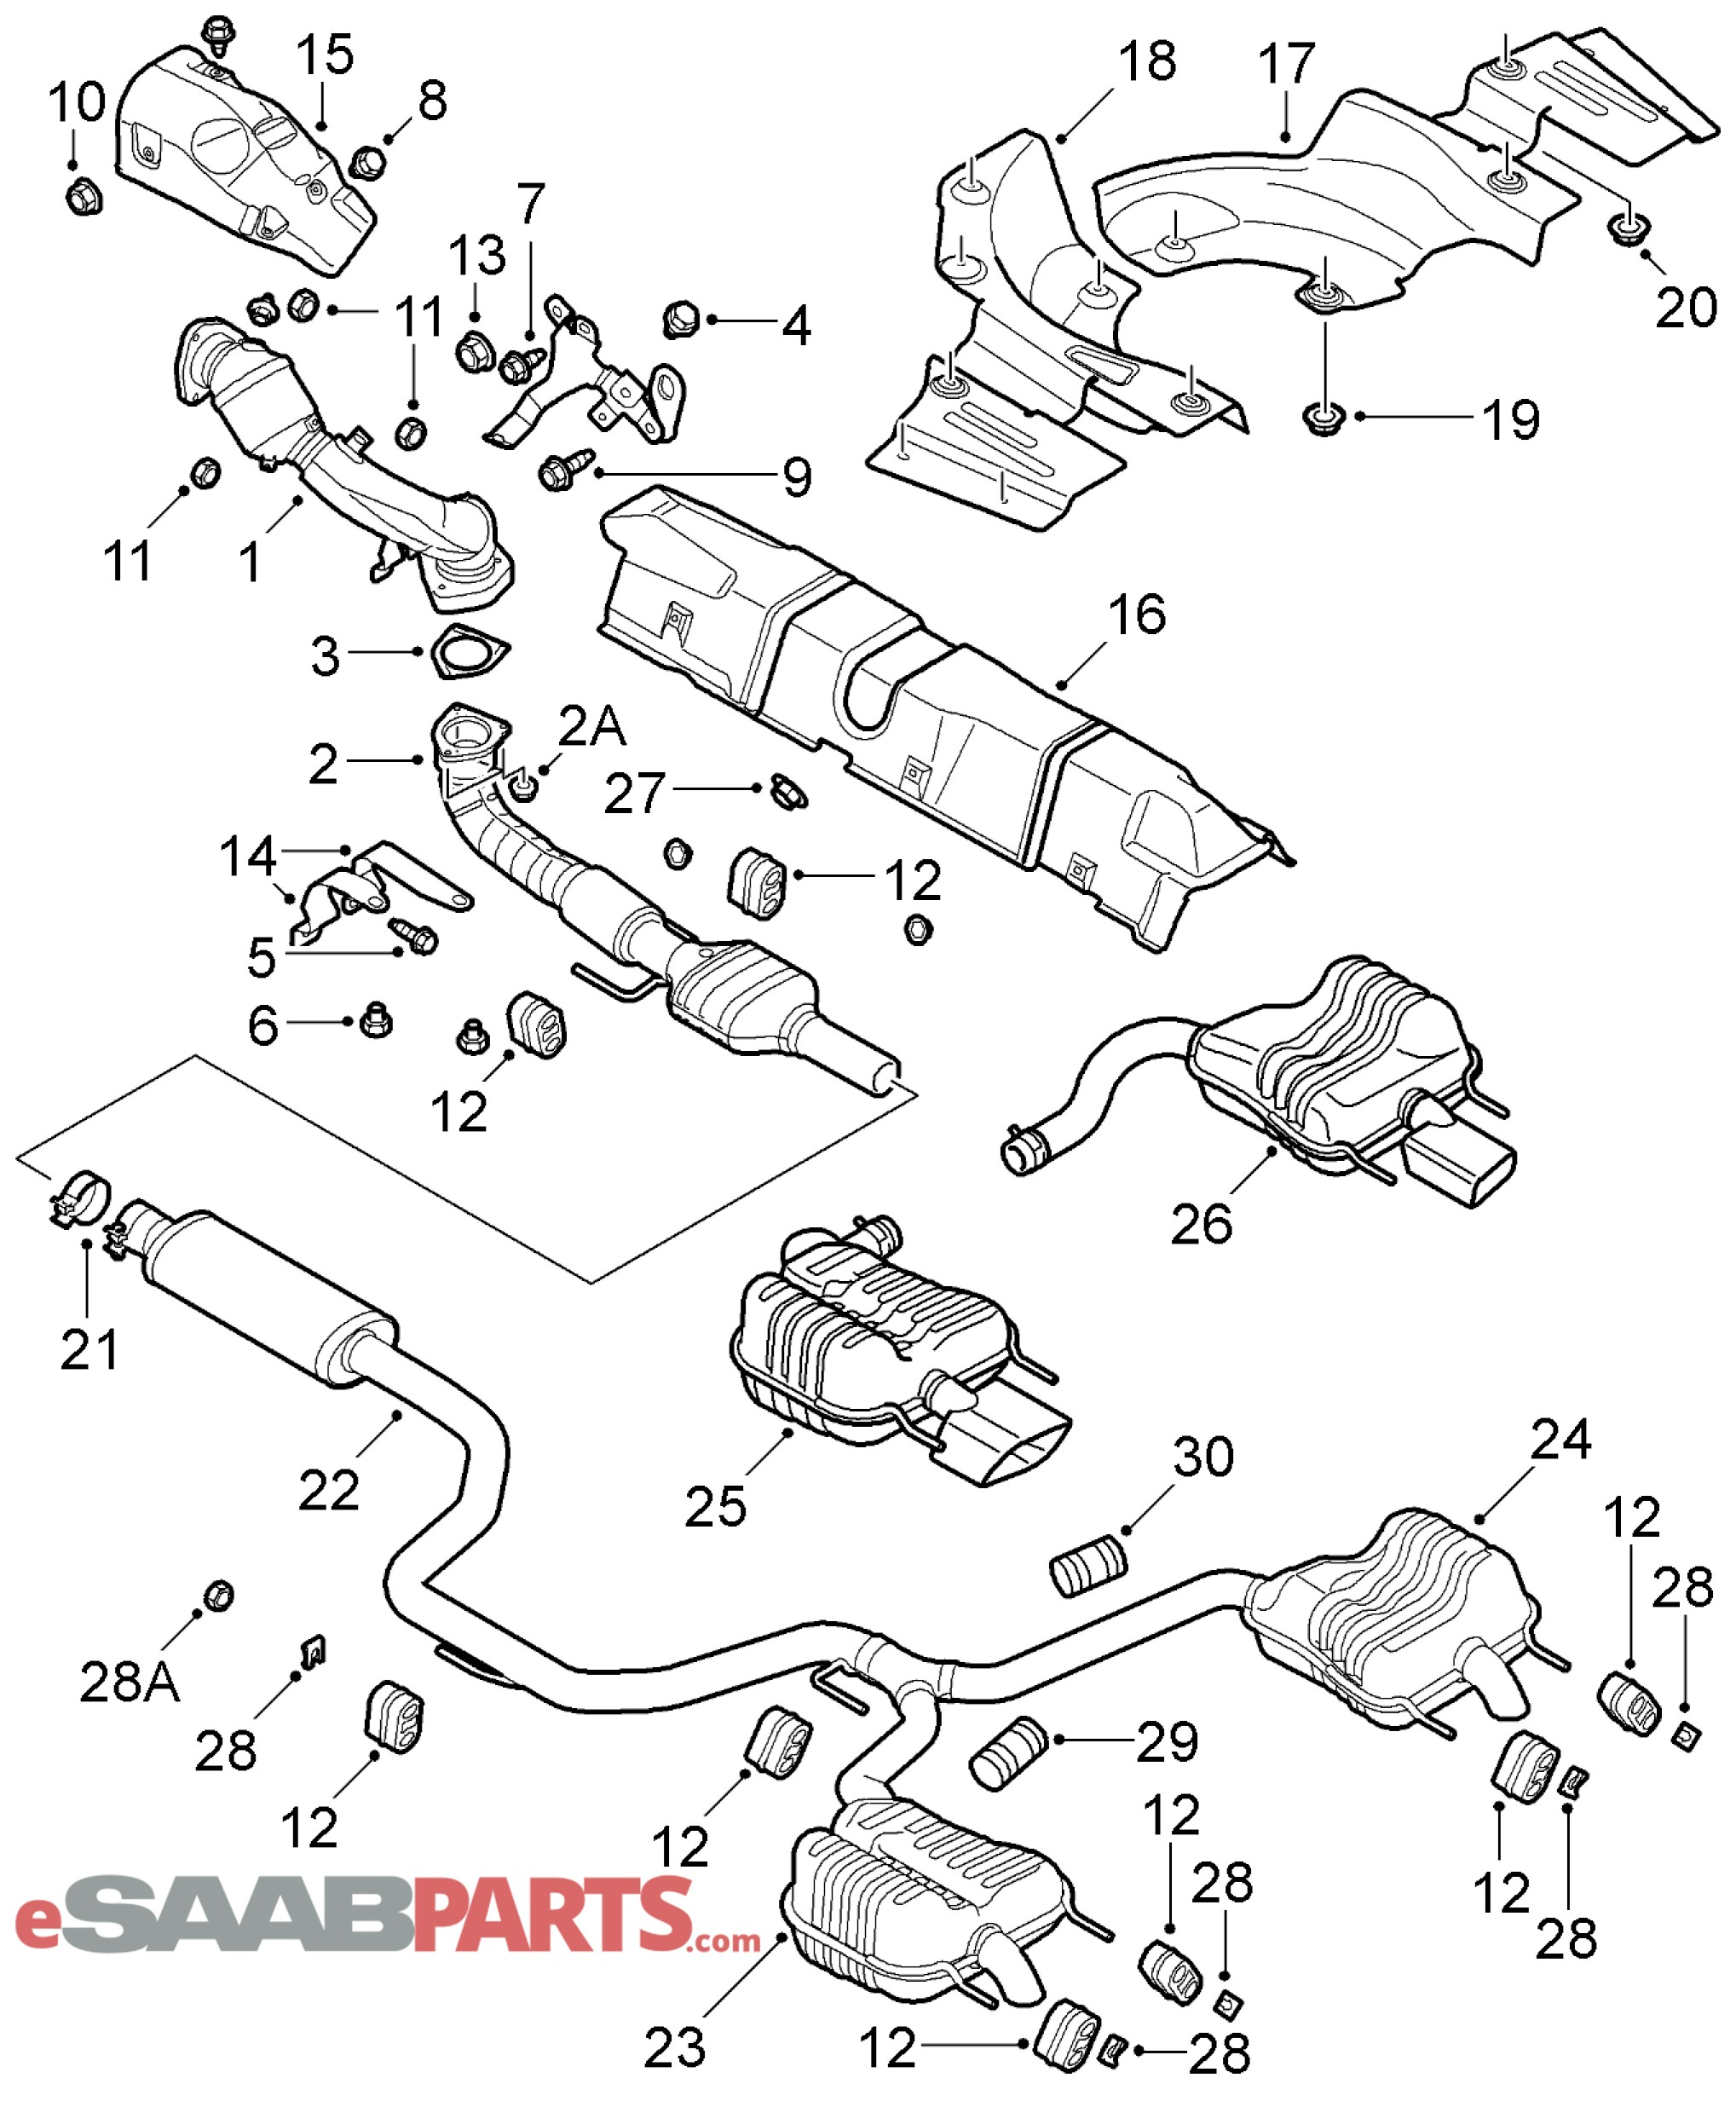 Diagram Of Exhaust System Of Car Esaabparts Saab 9 3 9440 Engine Parts Exhaust System Of Diagram Of Exhaust System Of Car